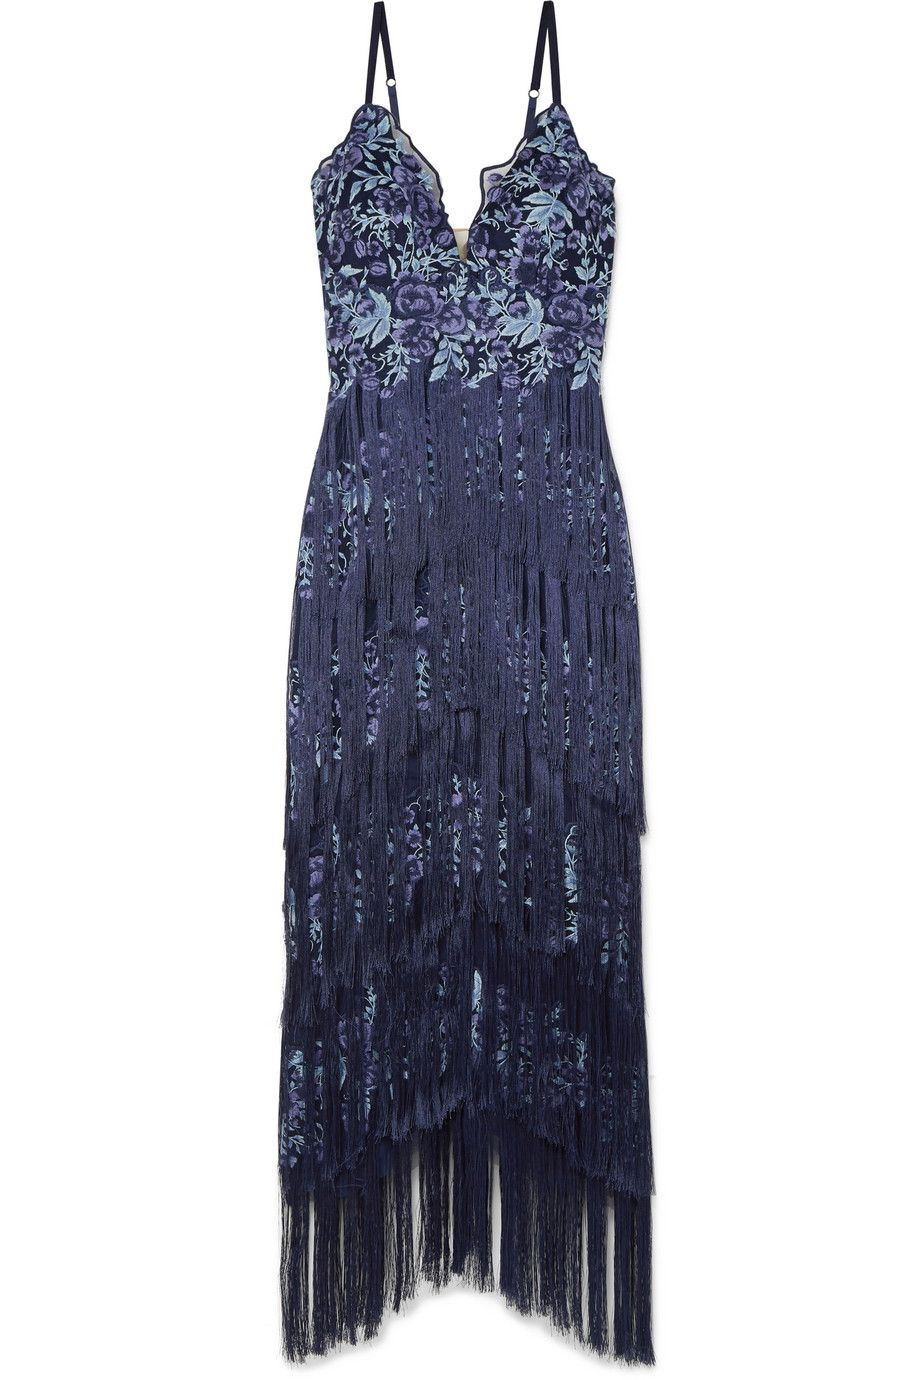 Marchesa notte green lace dress  Marchesa Notte  Fringed embroidered tulle gown  NETAPORTERCOM